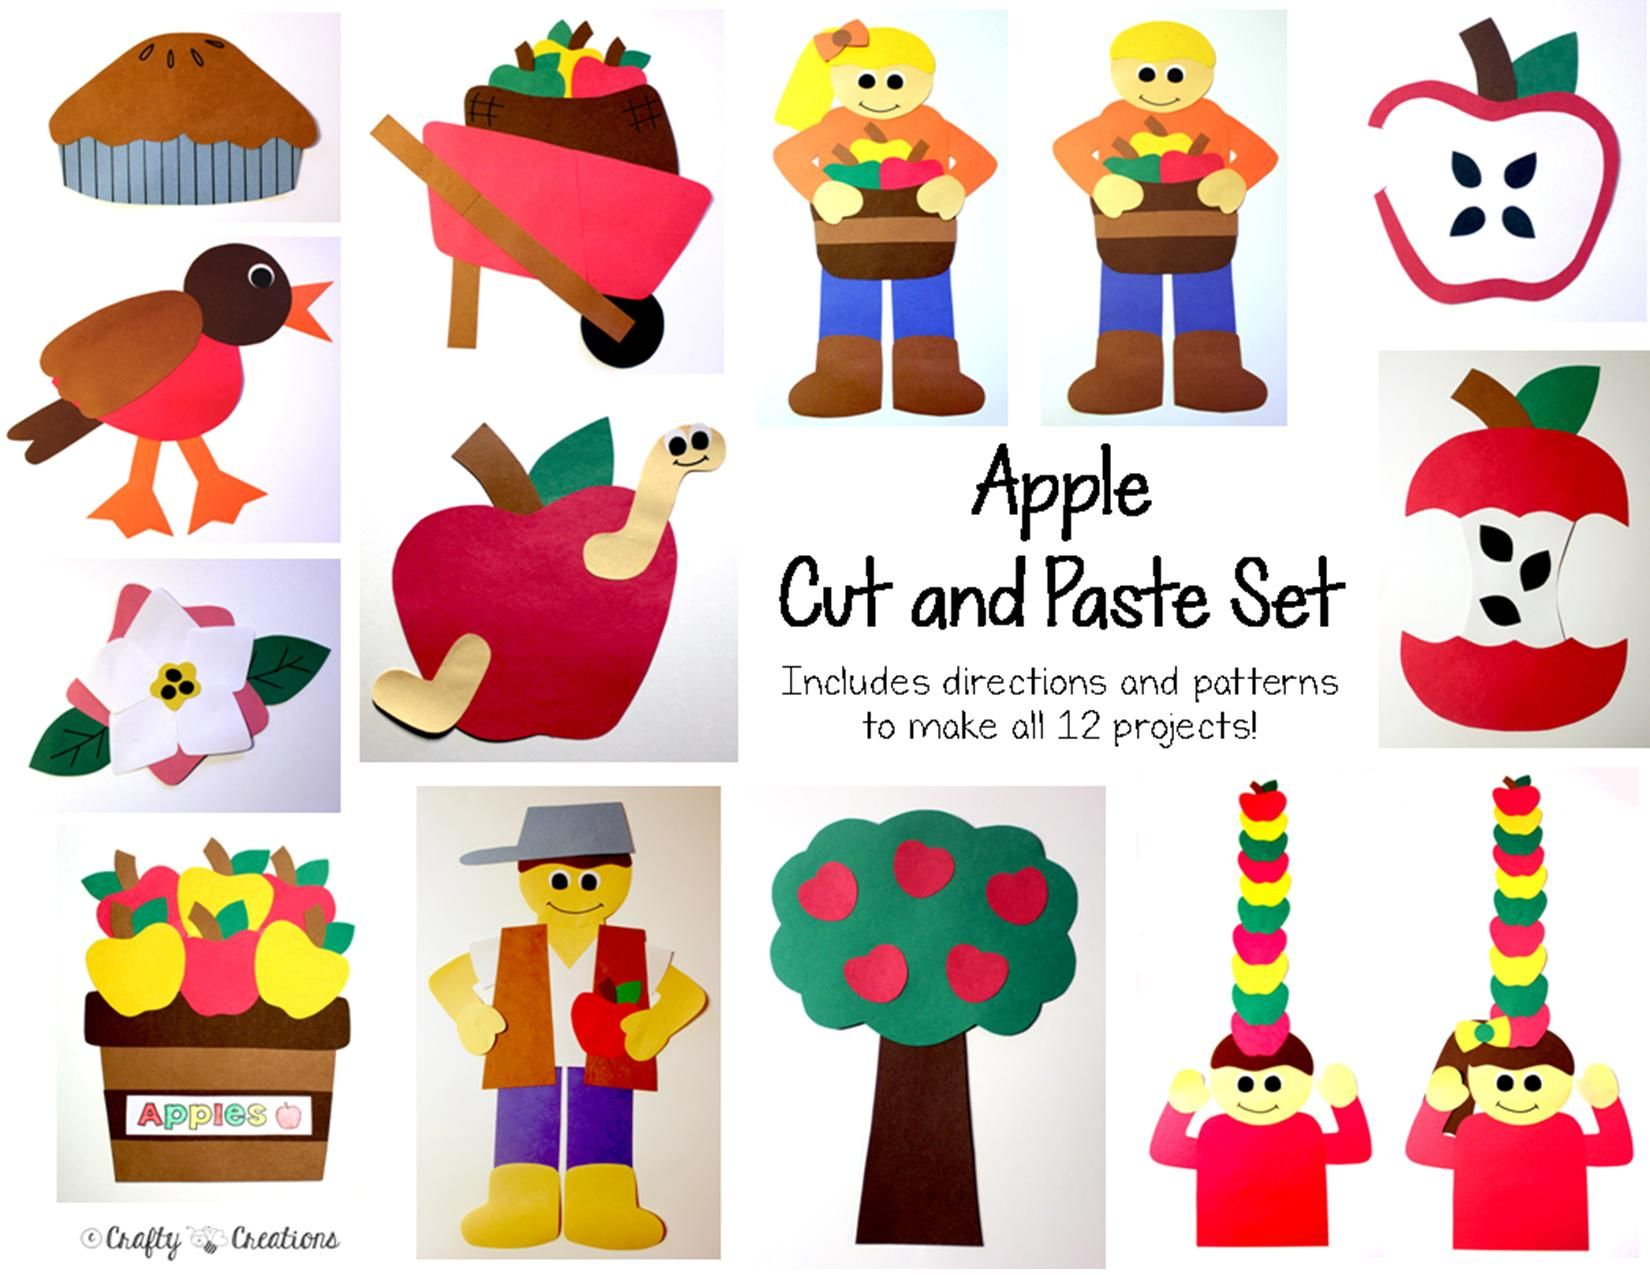 Apple Cut and Paste Set that includes patterns for copying and tracing by hand.